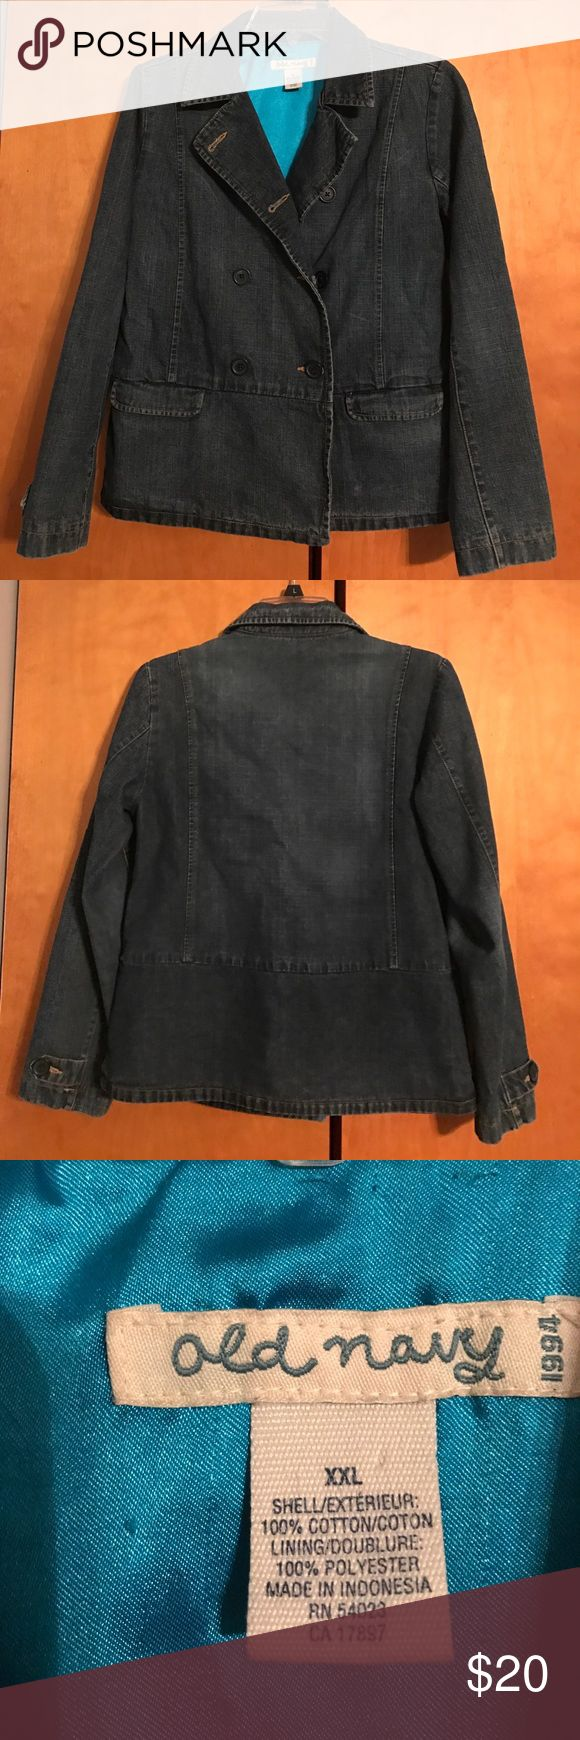 Cute Old Navy Jacket Old Navy jean jacket, excellent preloved condition (0625017) Old Navy Jackets & Coats Jean Jackets